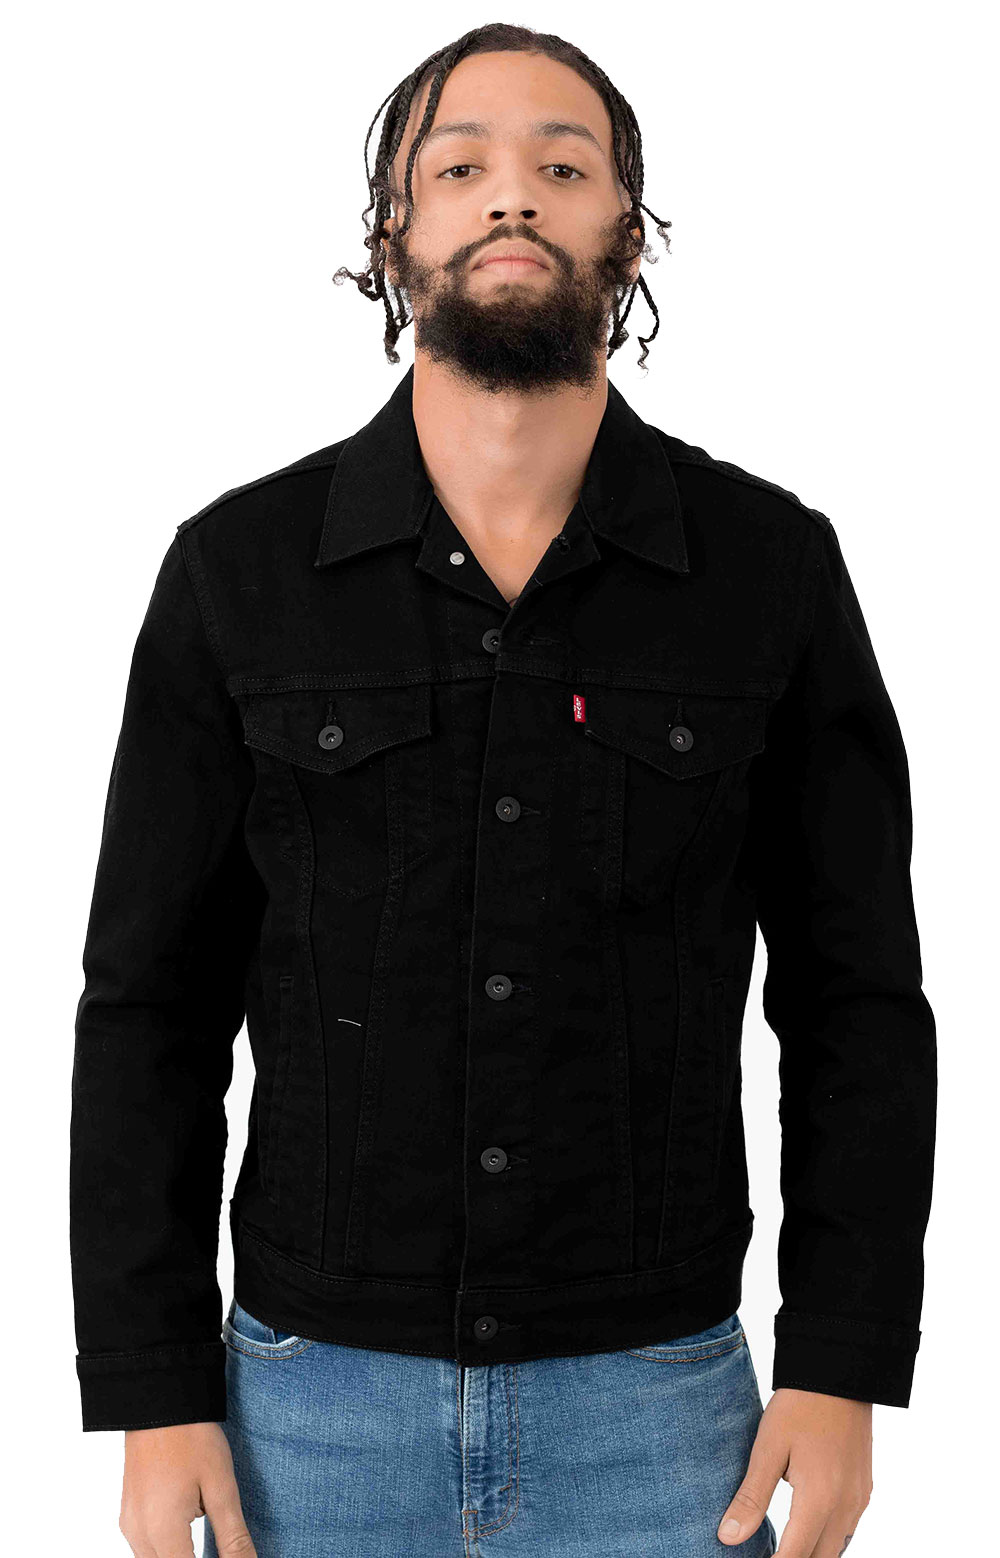 The Trucker Jacket - Lamar Black